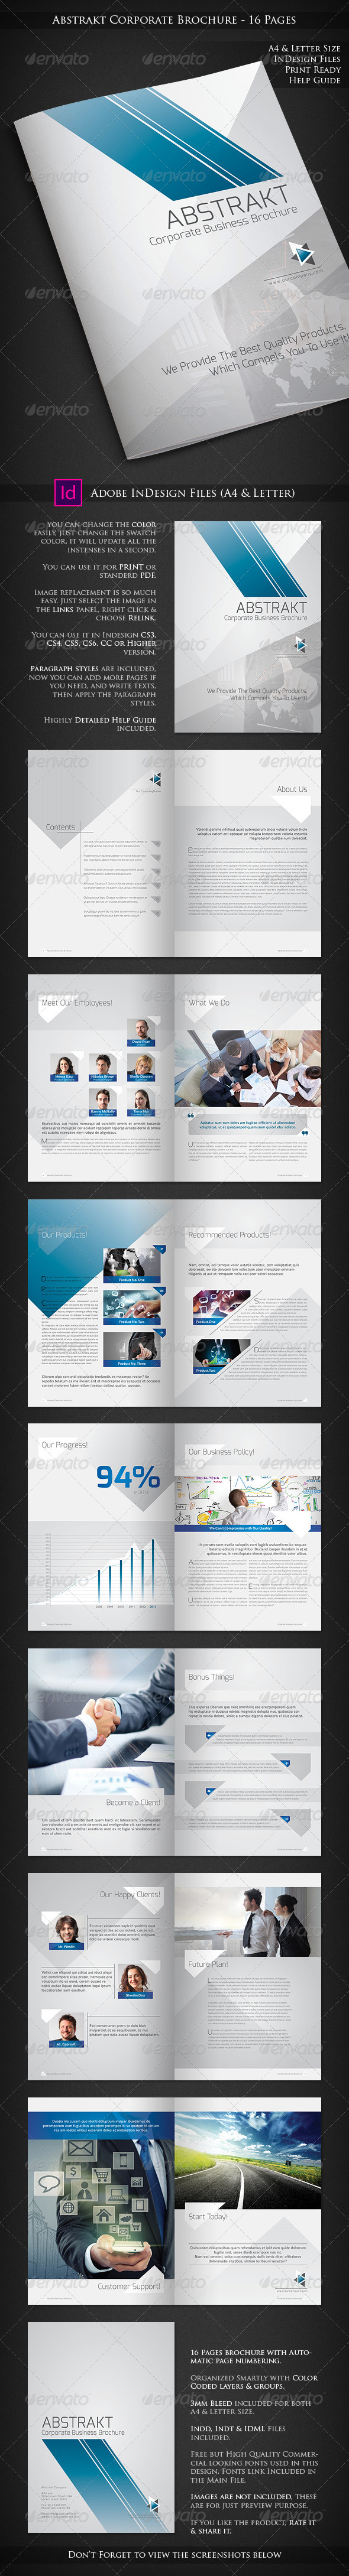 Abstrakt - Corporate Brochure Design - 16 Pages - Corporate Brochures